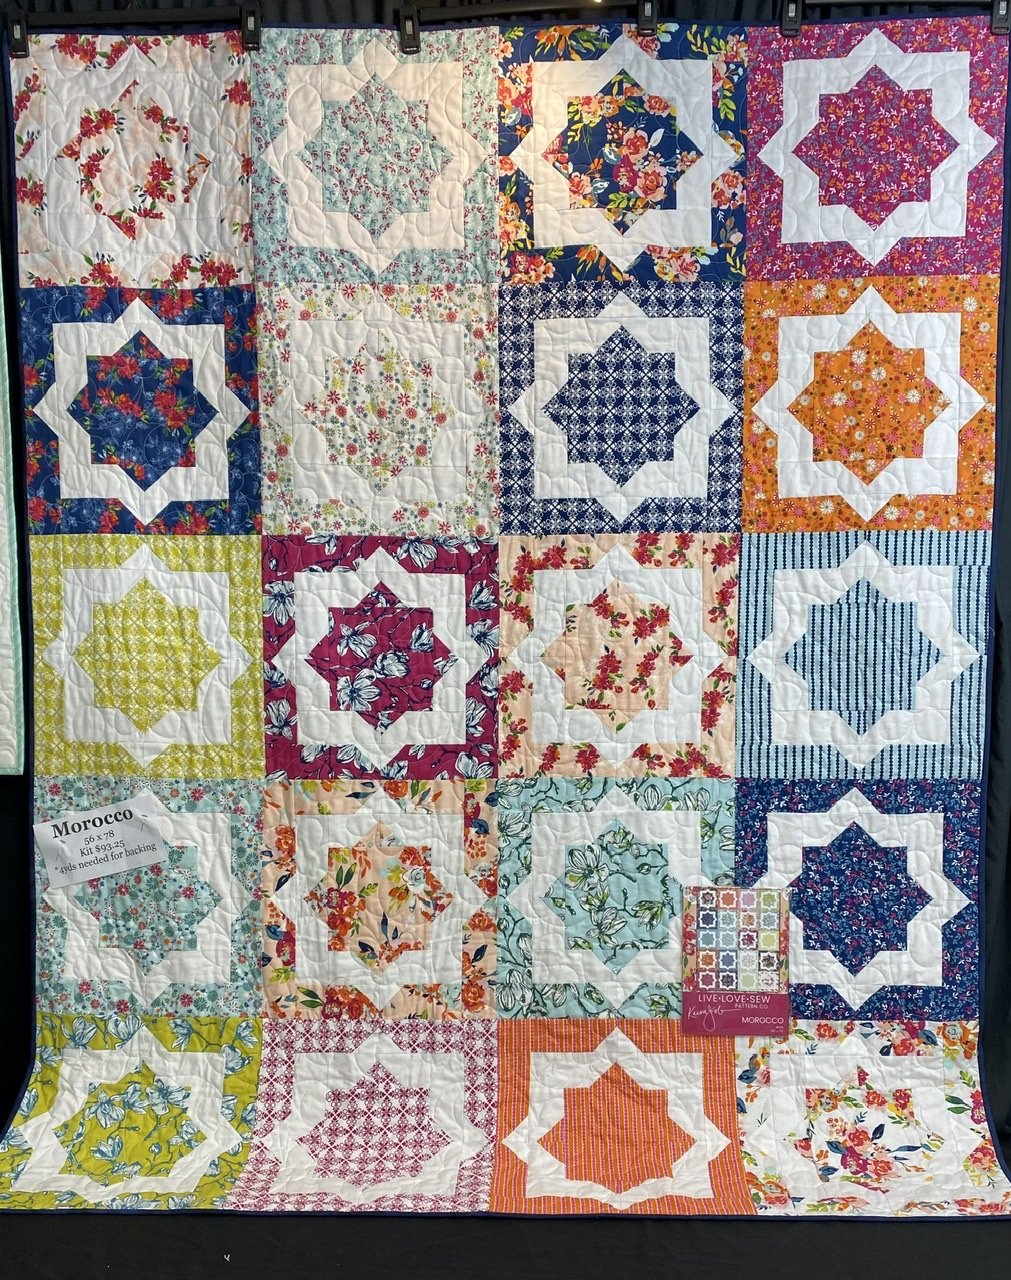 Morocco, 56X70,  Garden Party, includes binding & pattern